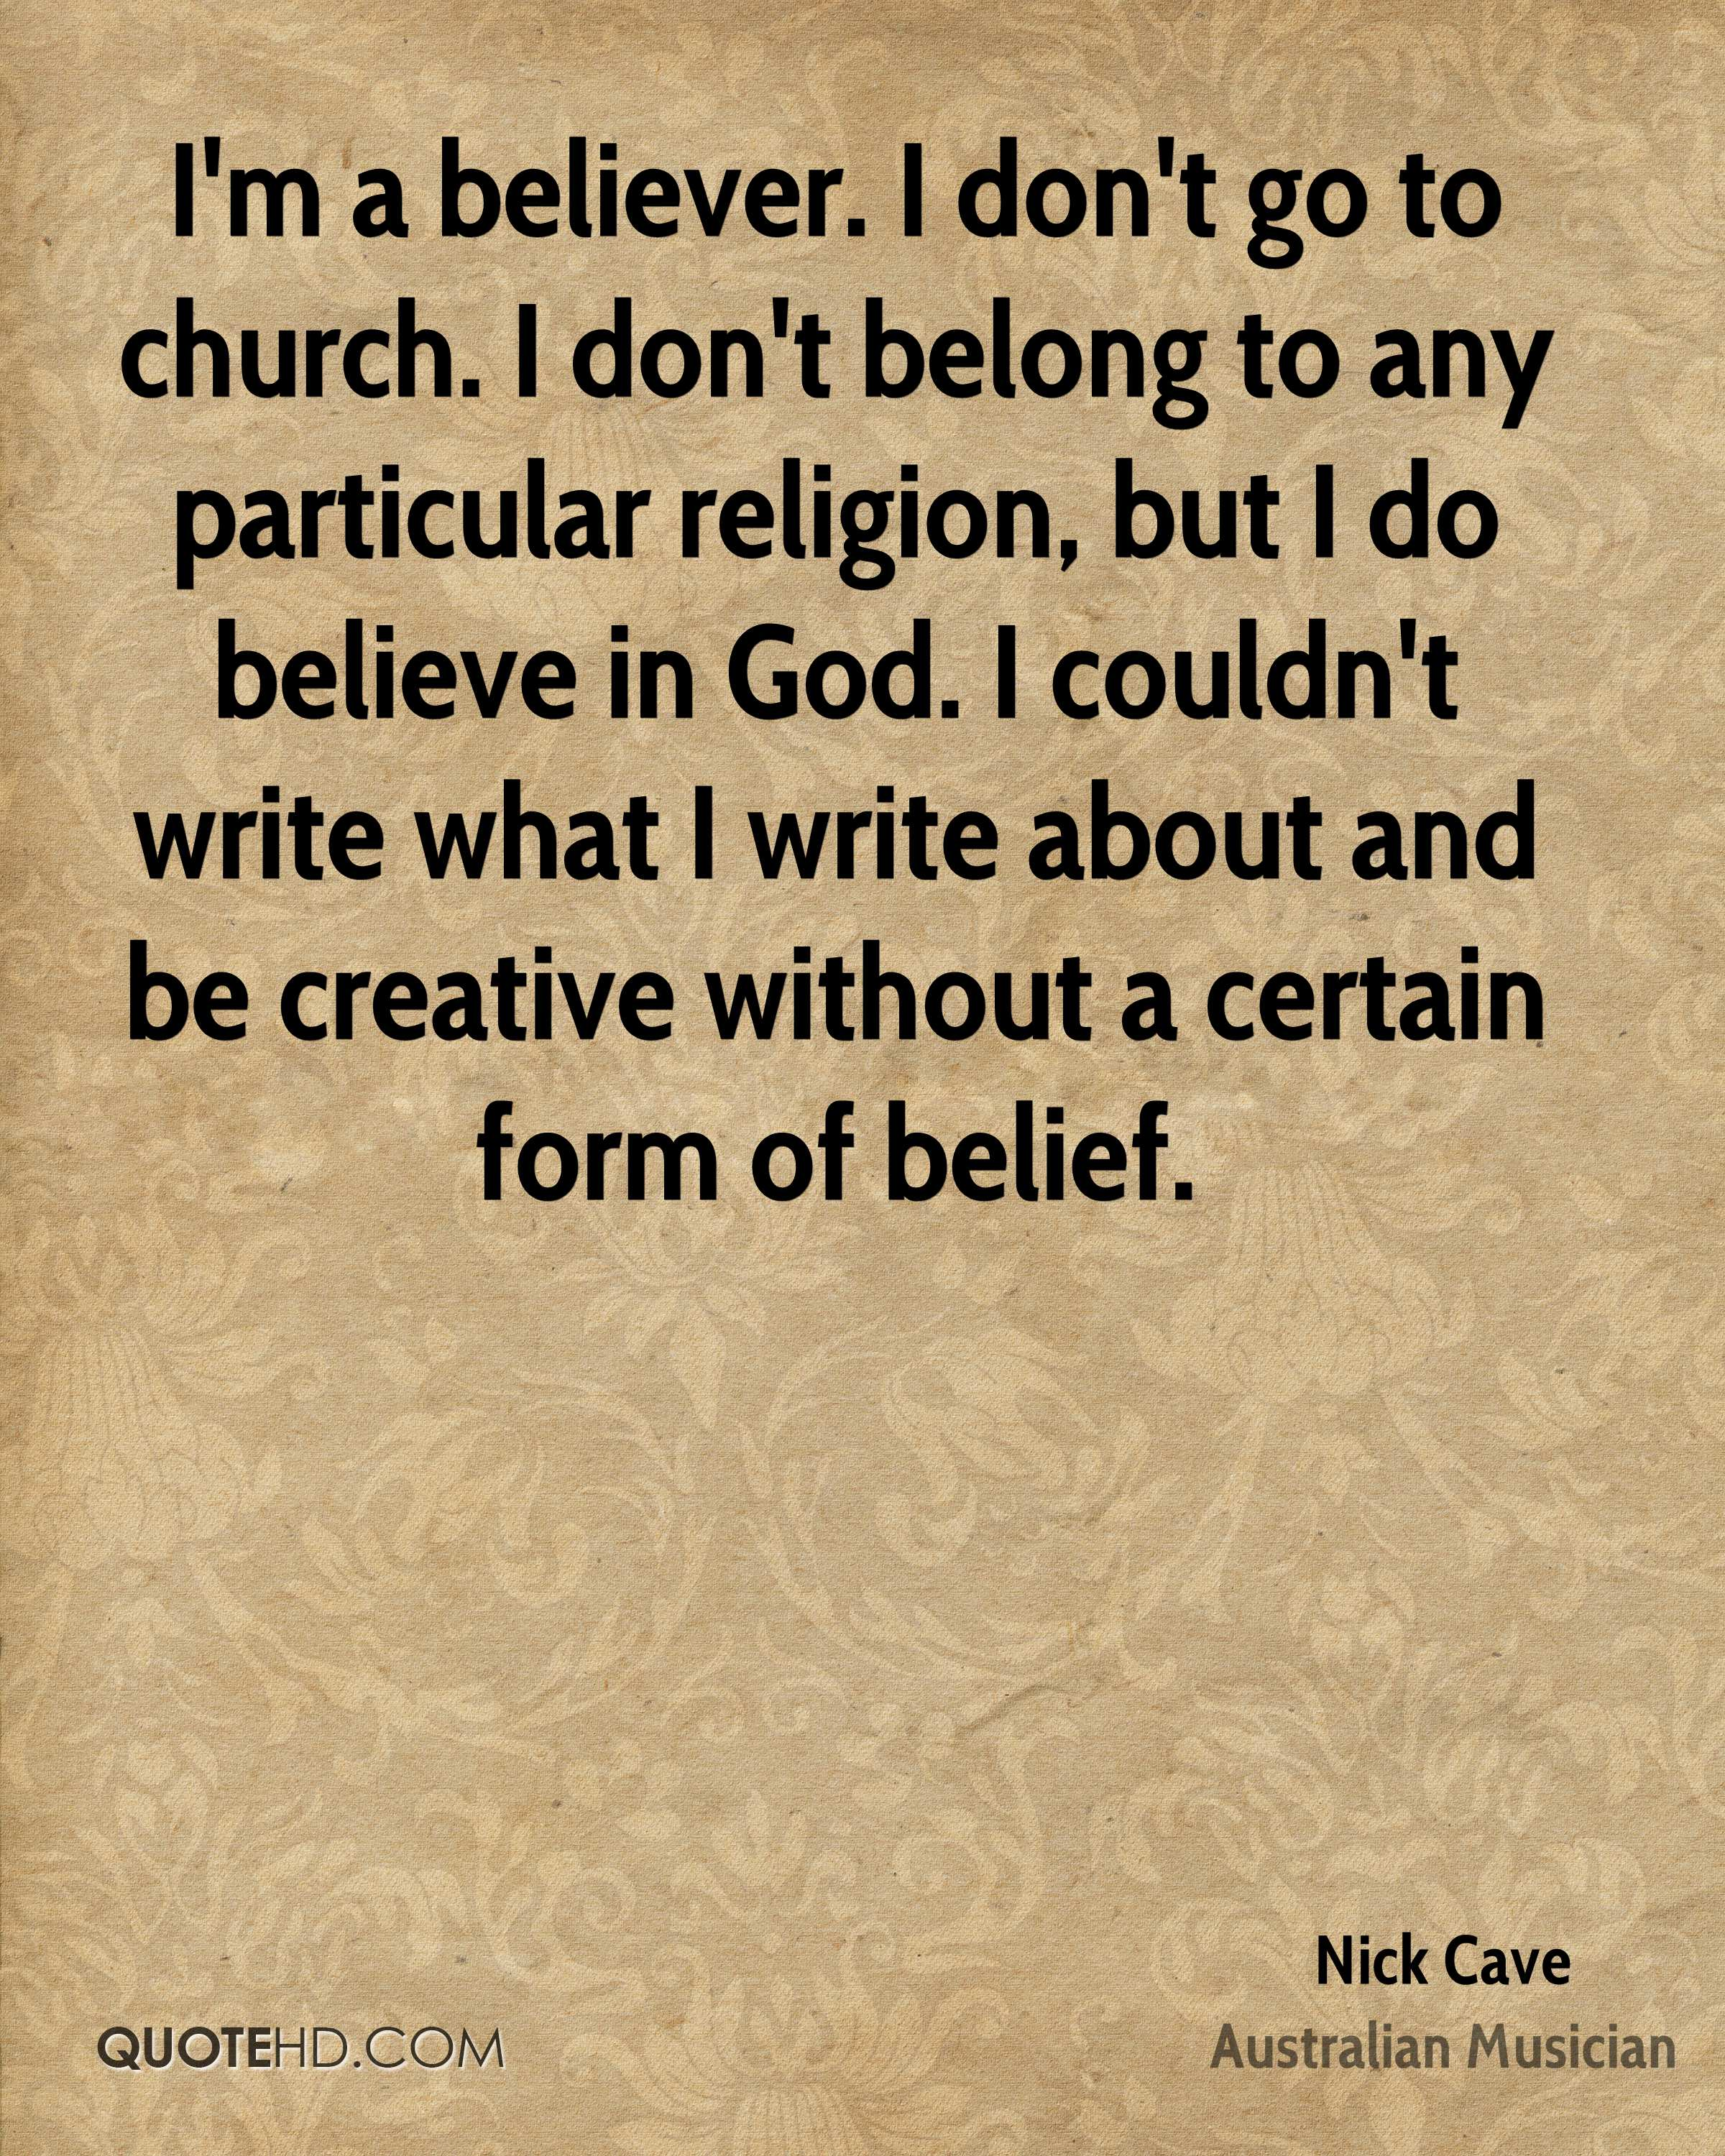 I'm a believer. I don't go to church. I don't belong to any particular religion, but I do believe in God. I couldn't write what I write about and be creative without a certain form of belief.